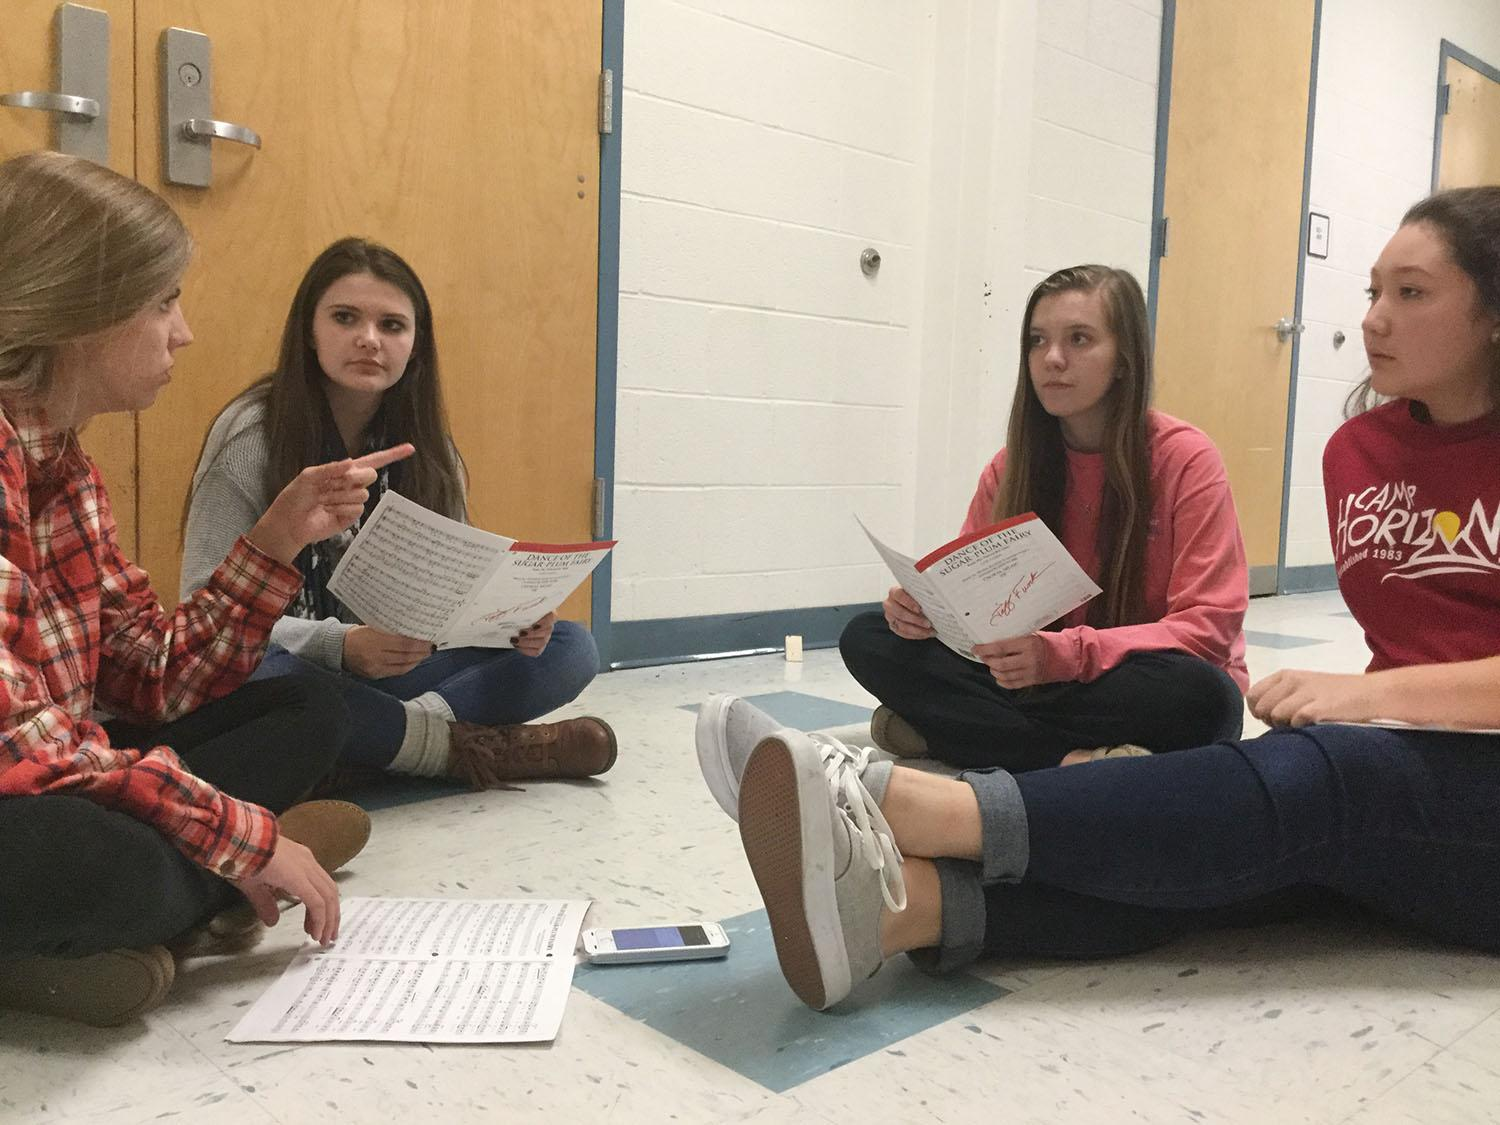 Forge Acapella Enthusiasts Find Their Voice – The Talon